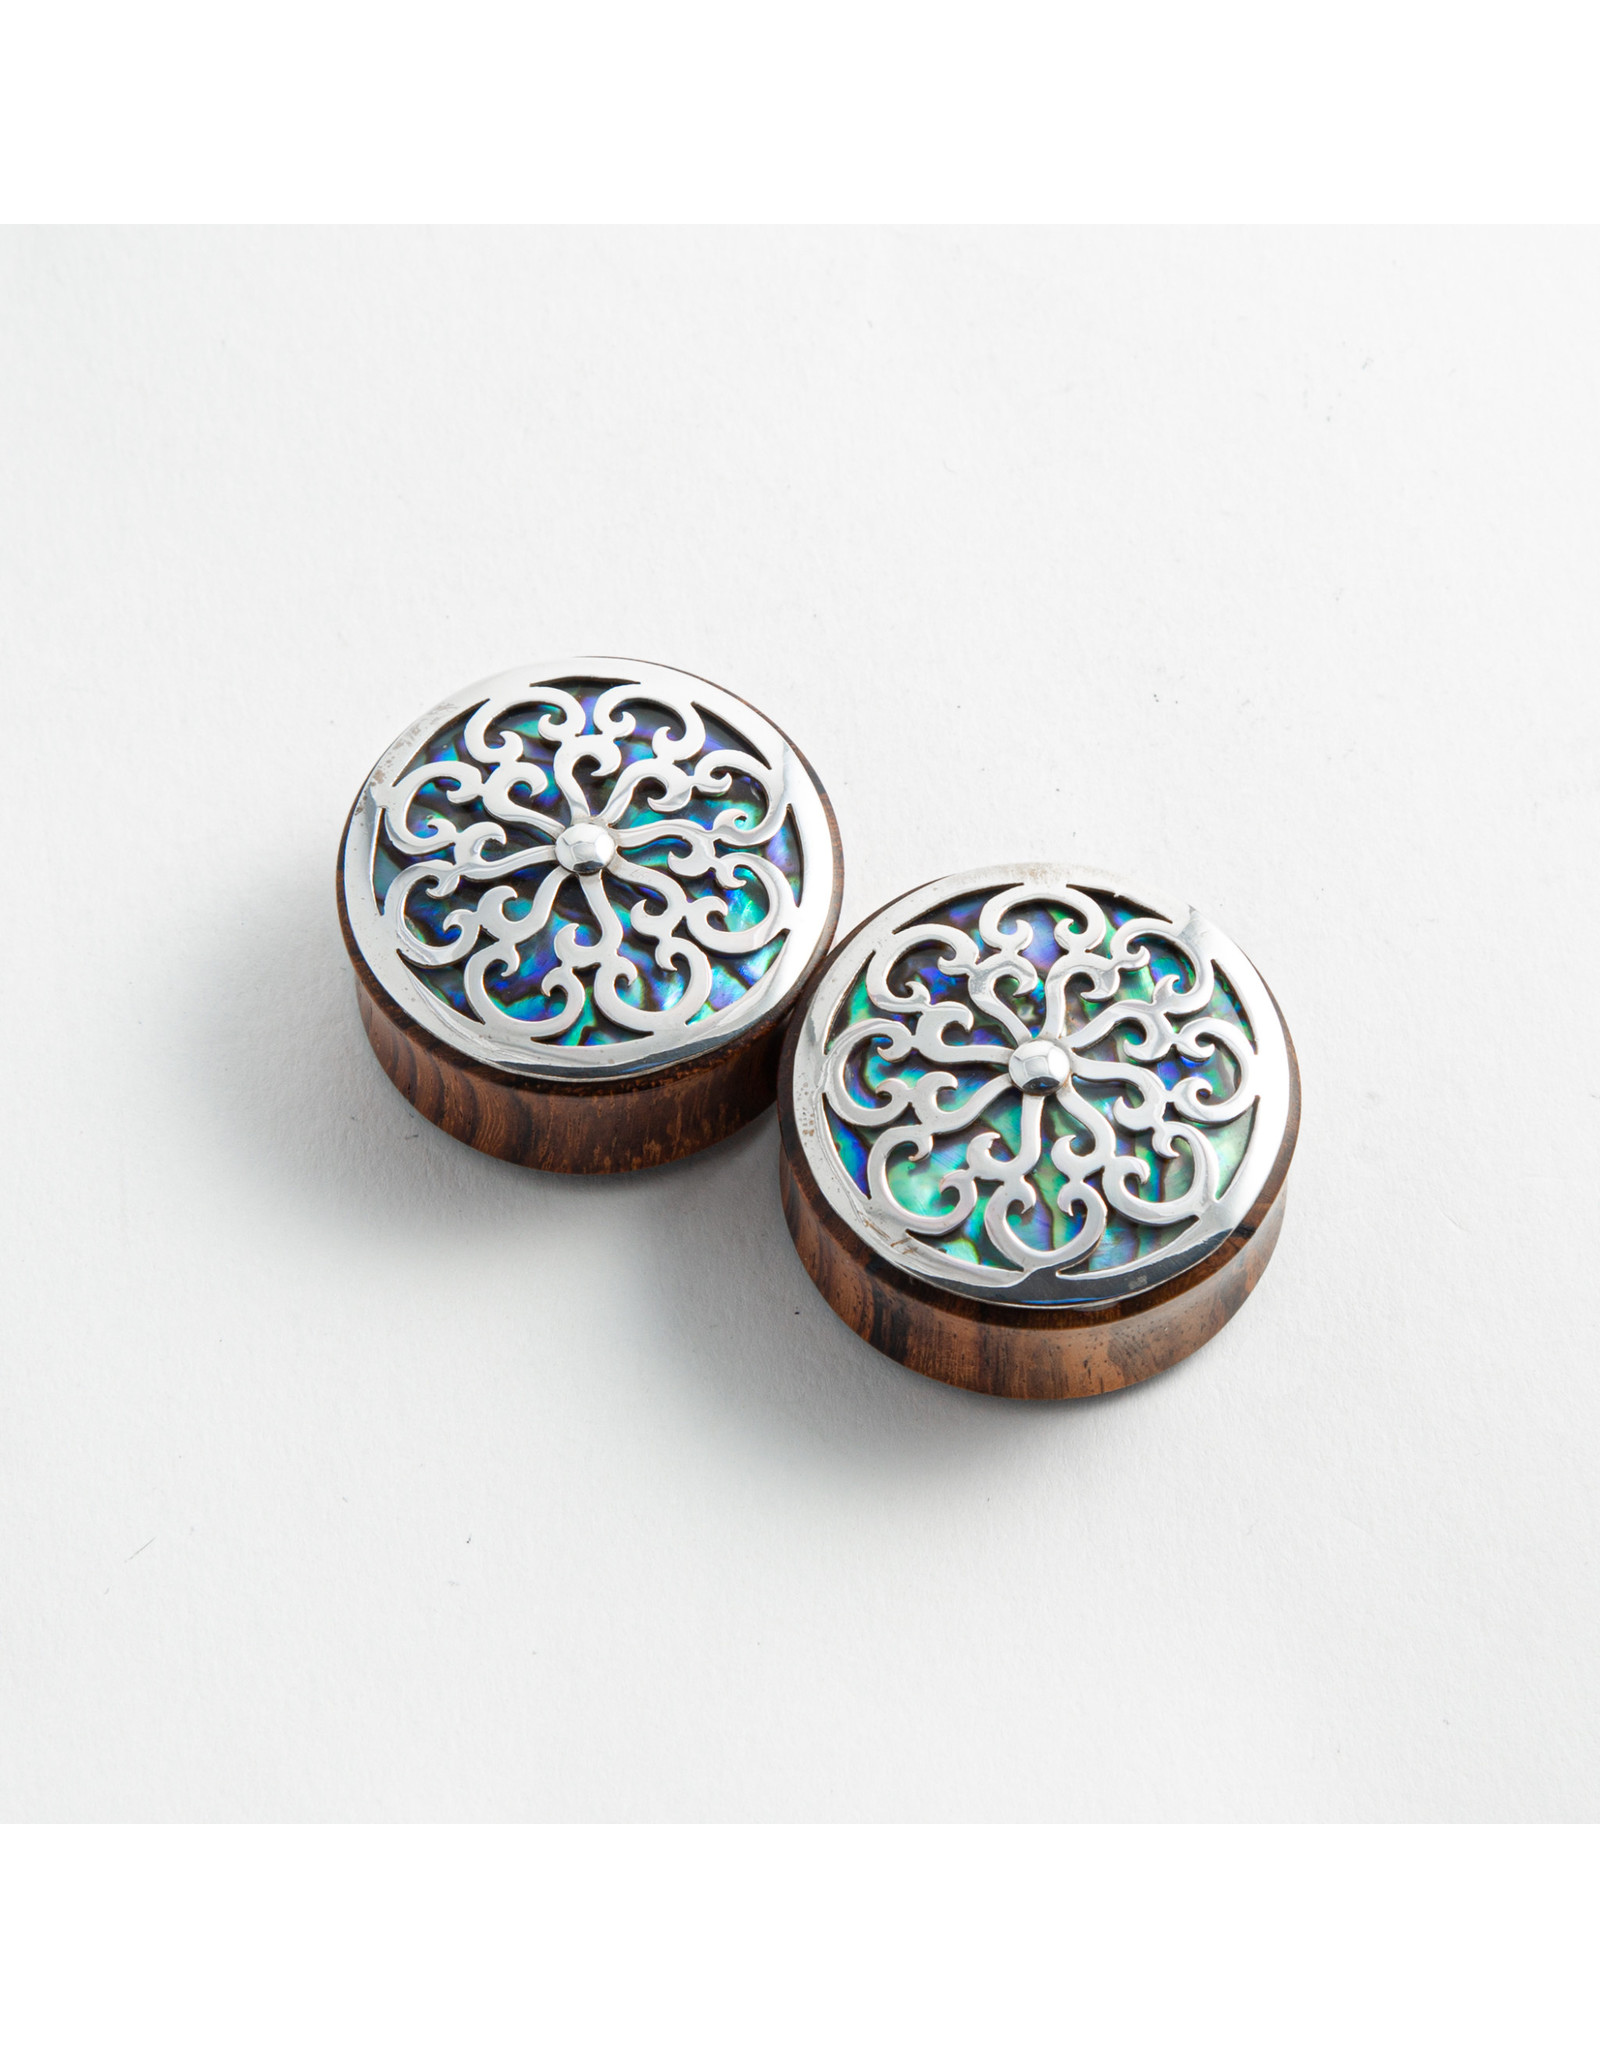 """Buddha Jewelry Organics Buddha Jewelry Organics 1-3/8 arang """"Idol"""" with Silver and Abalone inlay double flared plugs"""